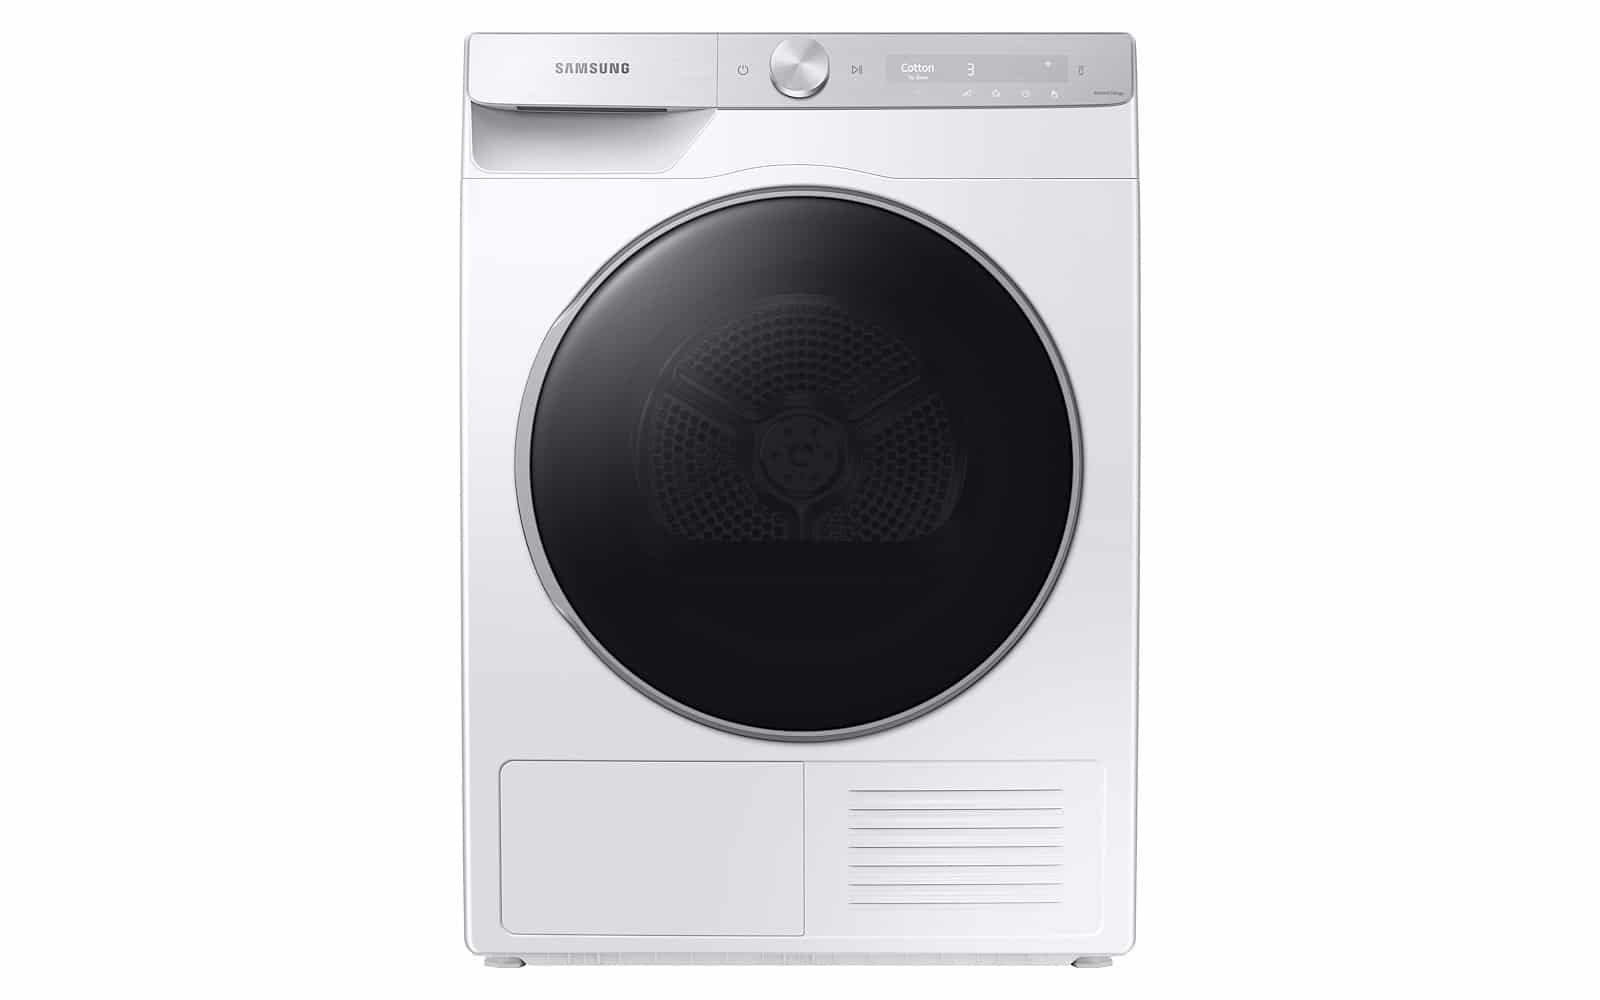 Samsung Simple UX laundry machines